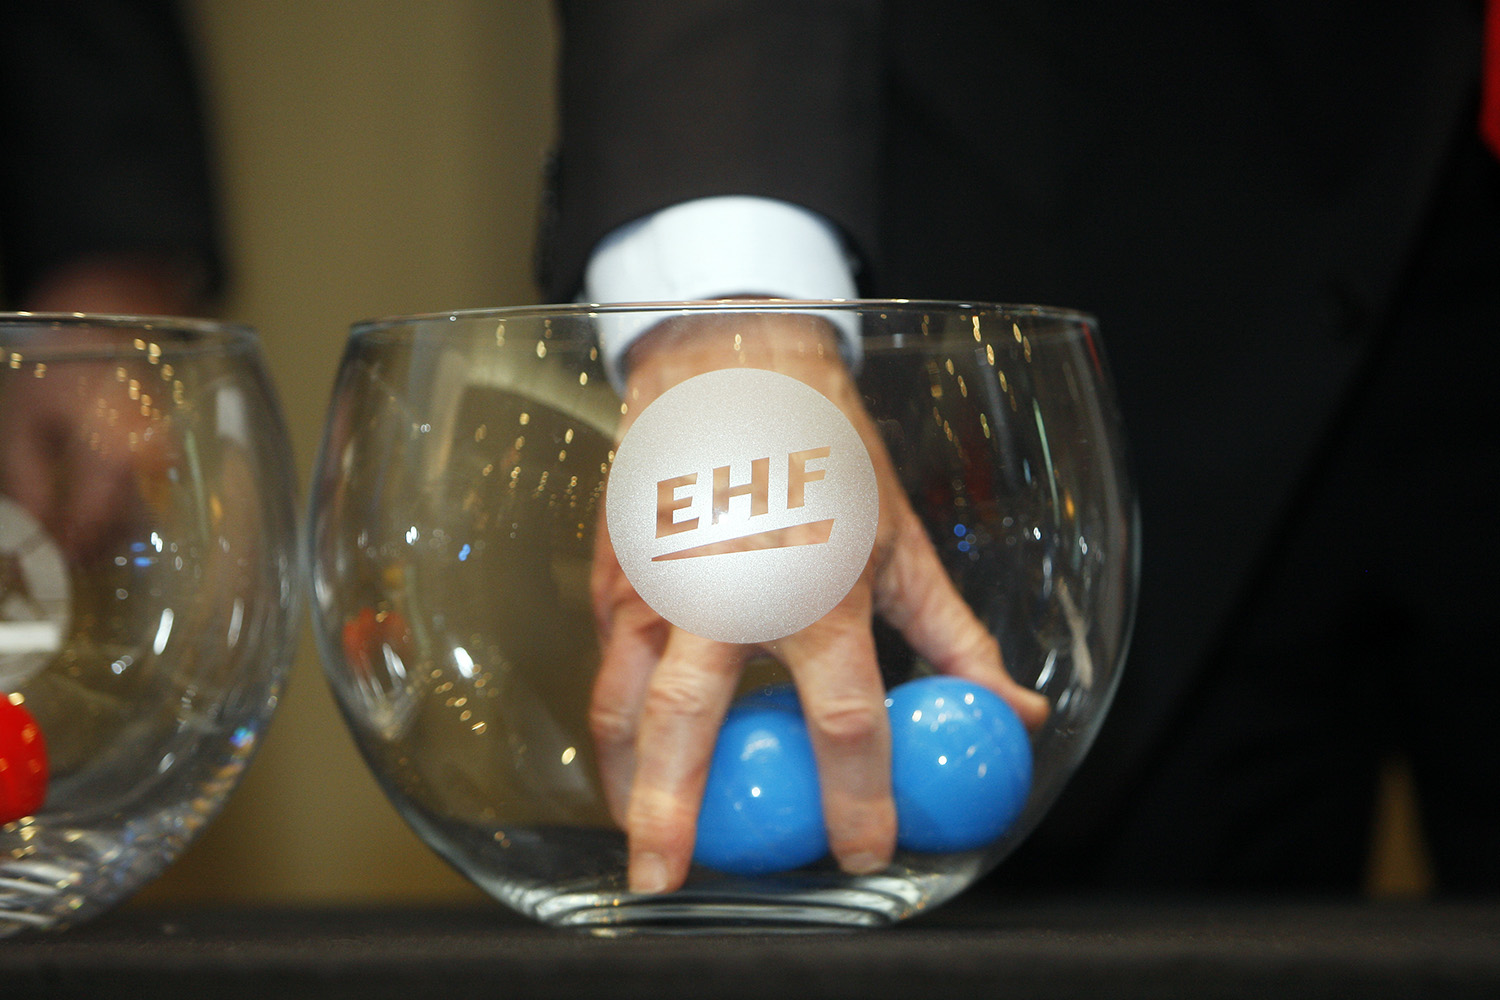 Monaco, Monte Carlo, 23.06.2012. Ehf EURO 2016 first stage draw event at the 11th EHF Congress. Photo: Uros HOCEVAR for the EHF